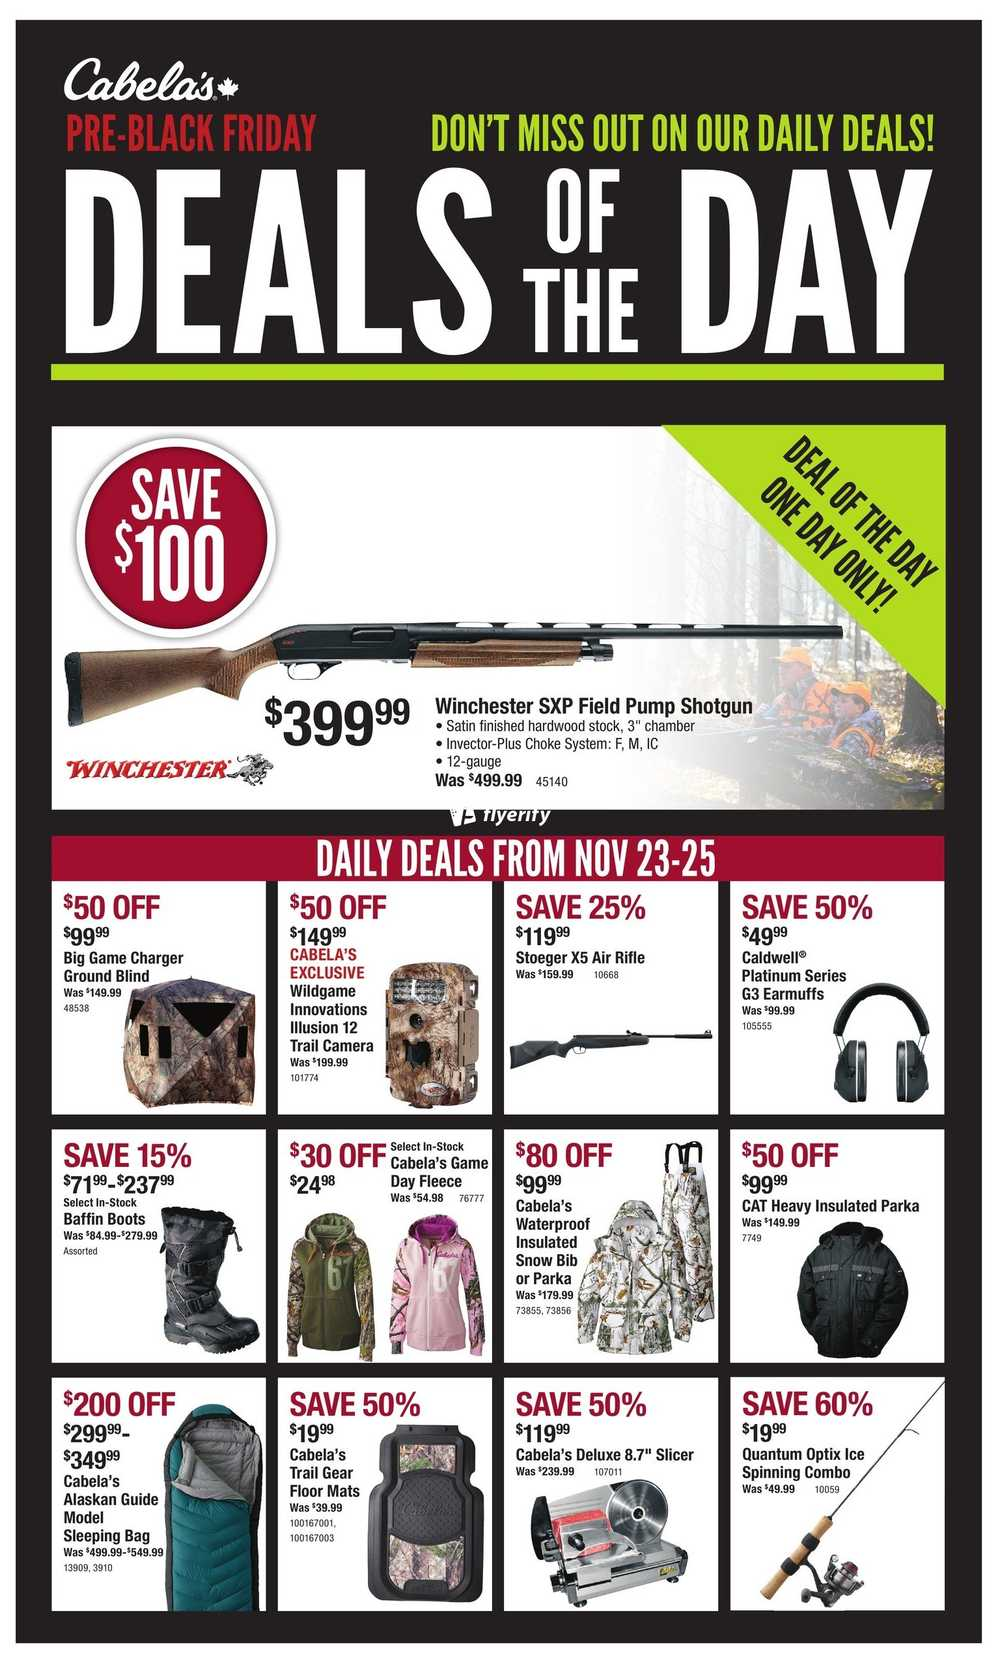 Welcome to the Outdoor Deal of Day site. We pull the deals automatically from over 68 of the 'One Deal At A Time' sites like zredbook.ml, Whiskey Militia, zredbook.ml, Department of Goods, Dogfunk, Chainlove, Patagonia, Sierra Trading Post and GearTrade.